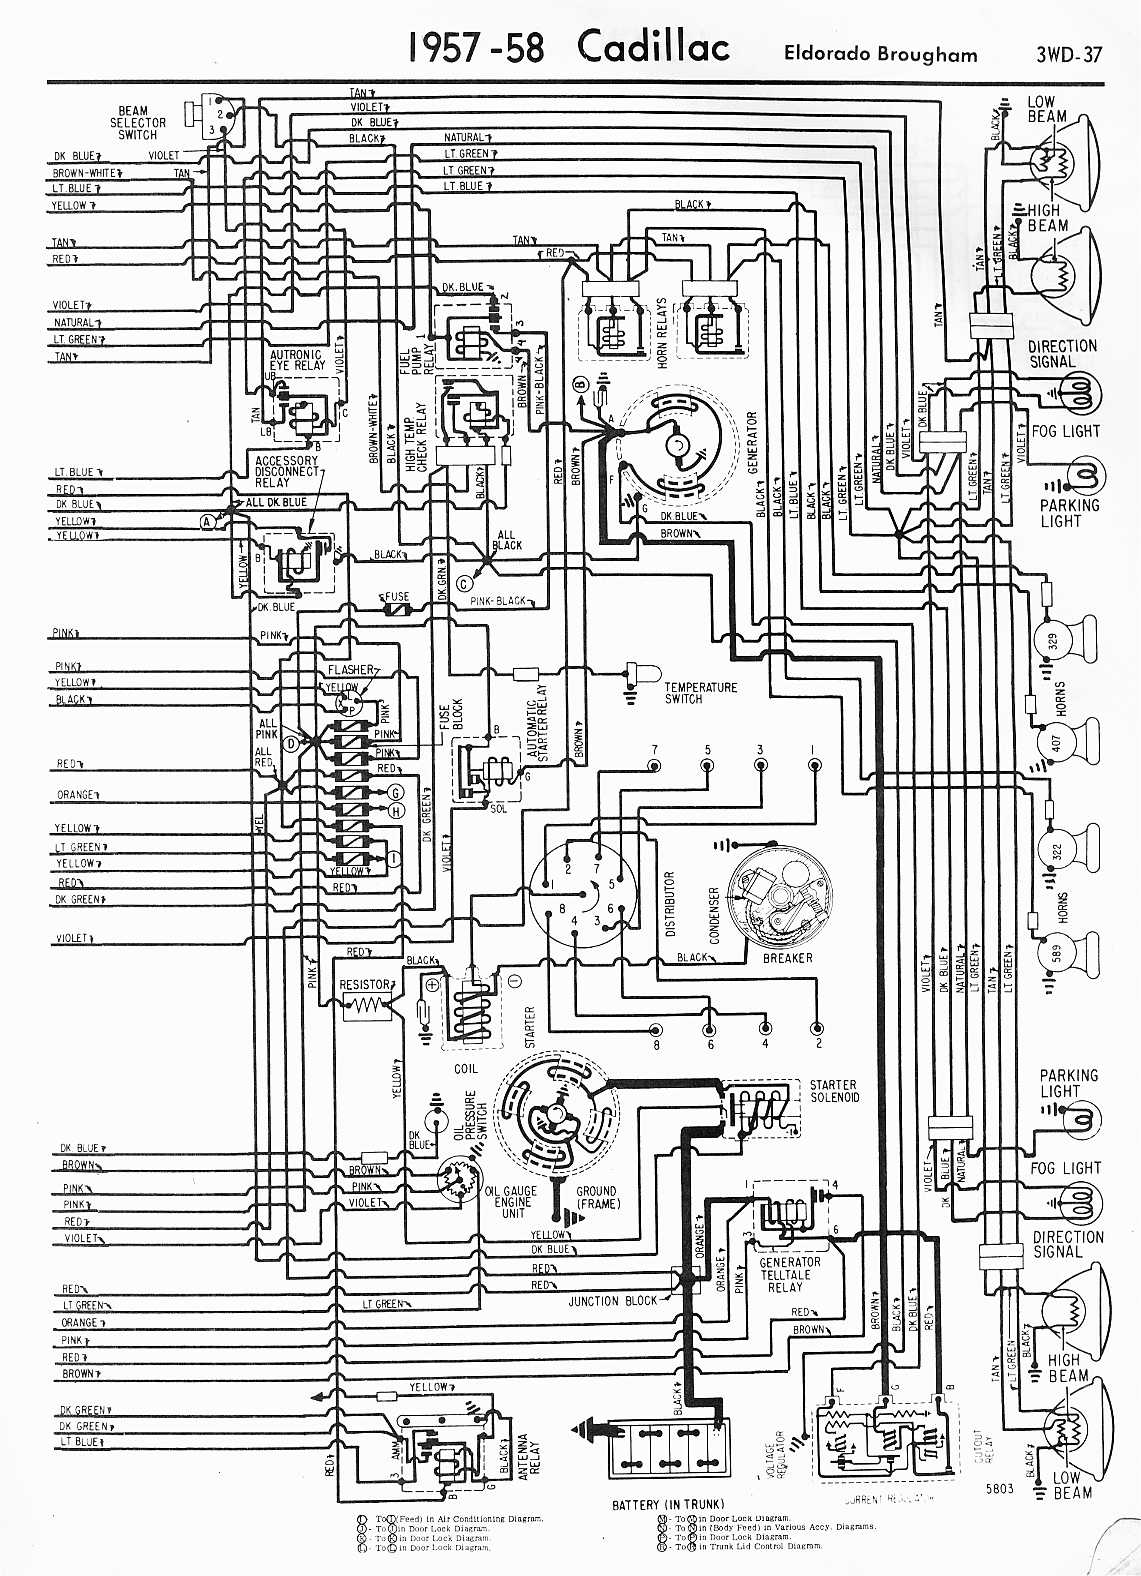 MWireCadi65_3WD 037 cadillac wiring diagrams 1957 1965 1957 plymouth wiring harness at nearapp.co